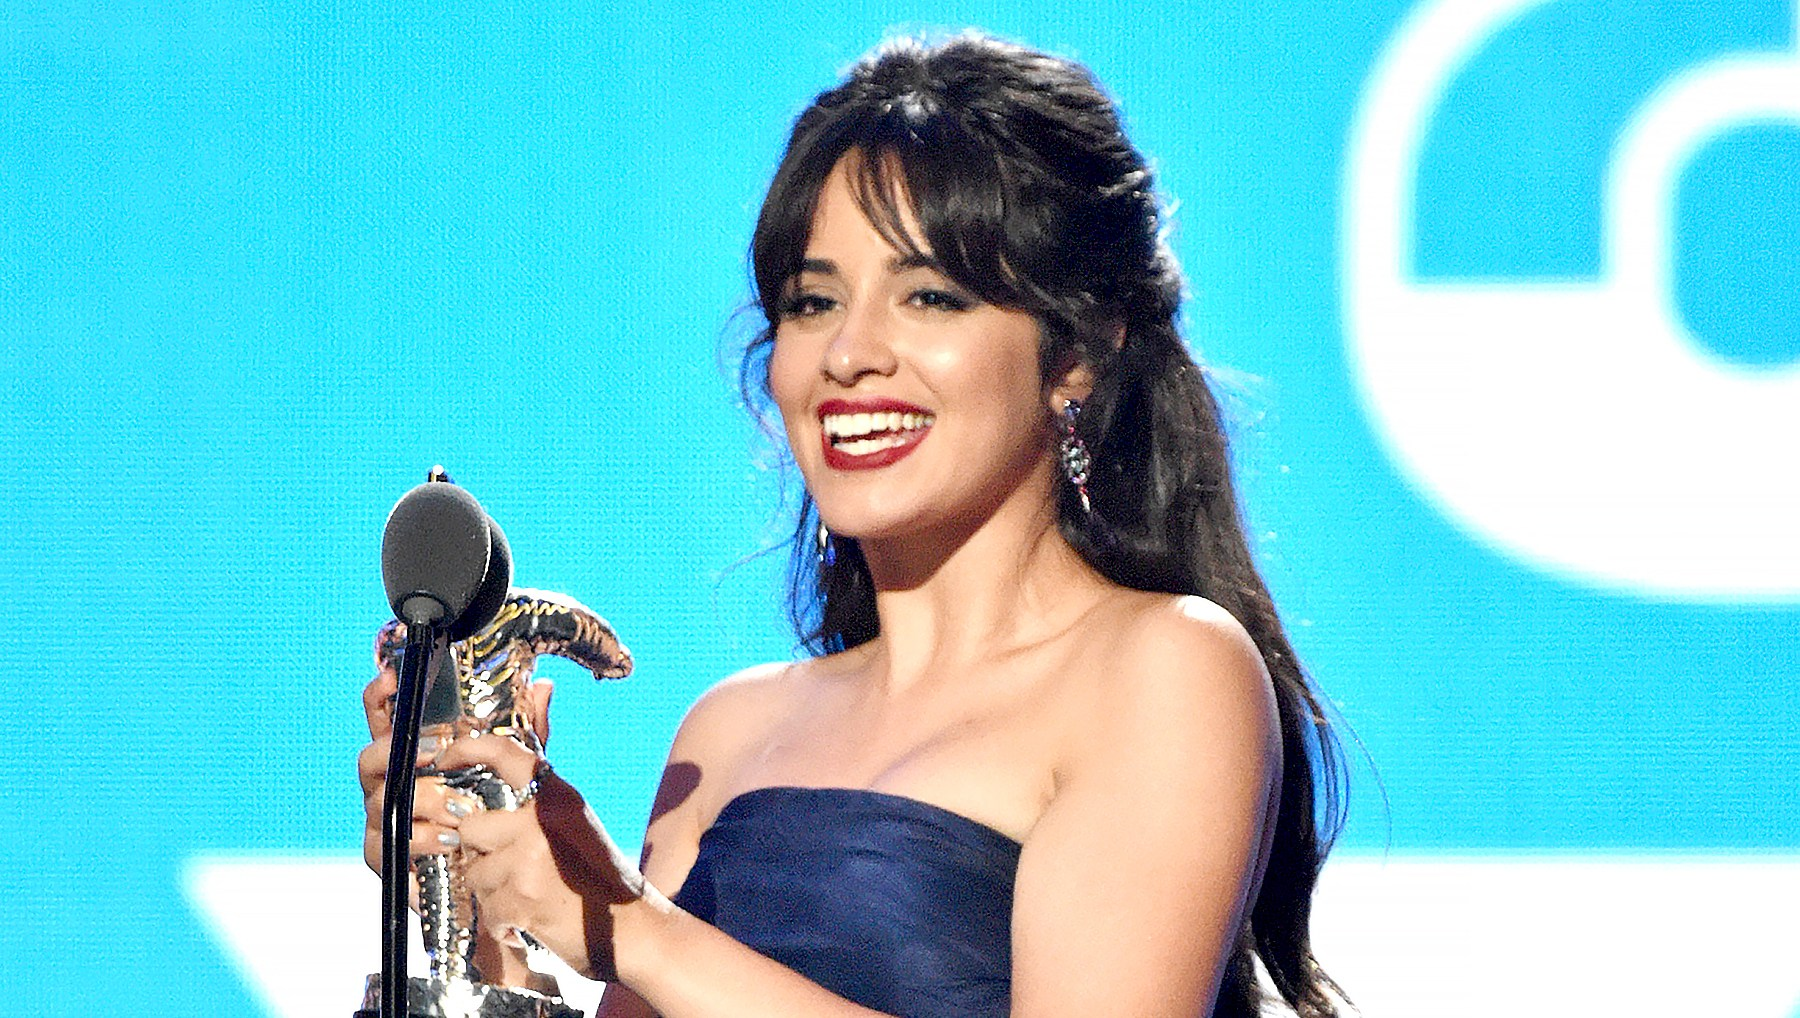 Camila-Cabello-best-video-vmas-2018